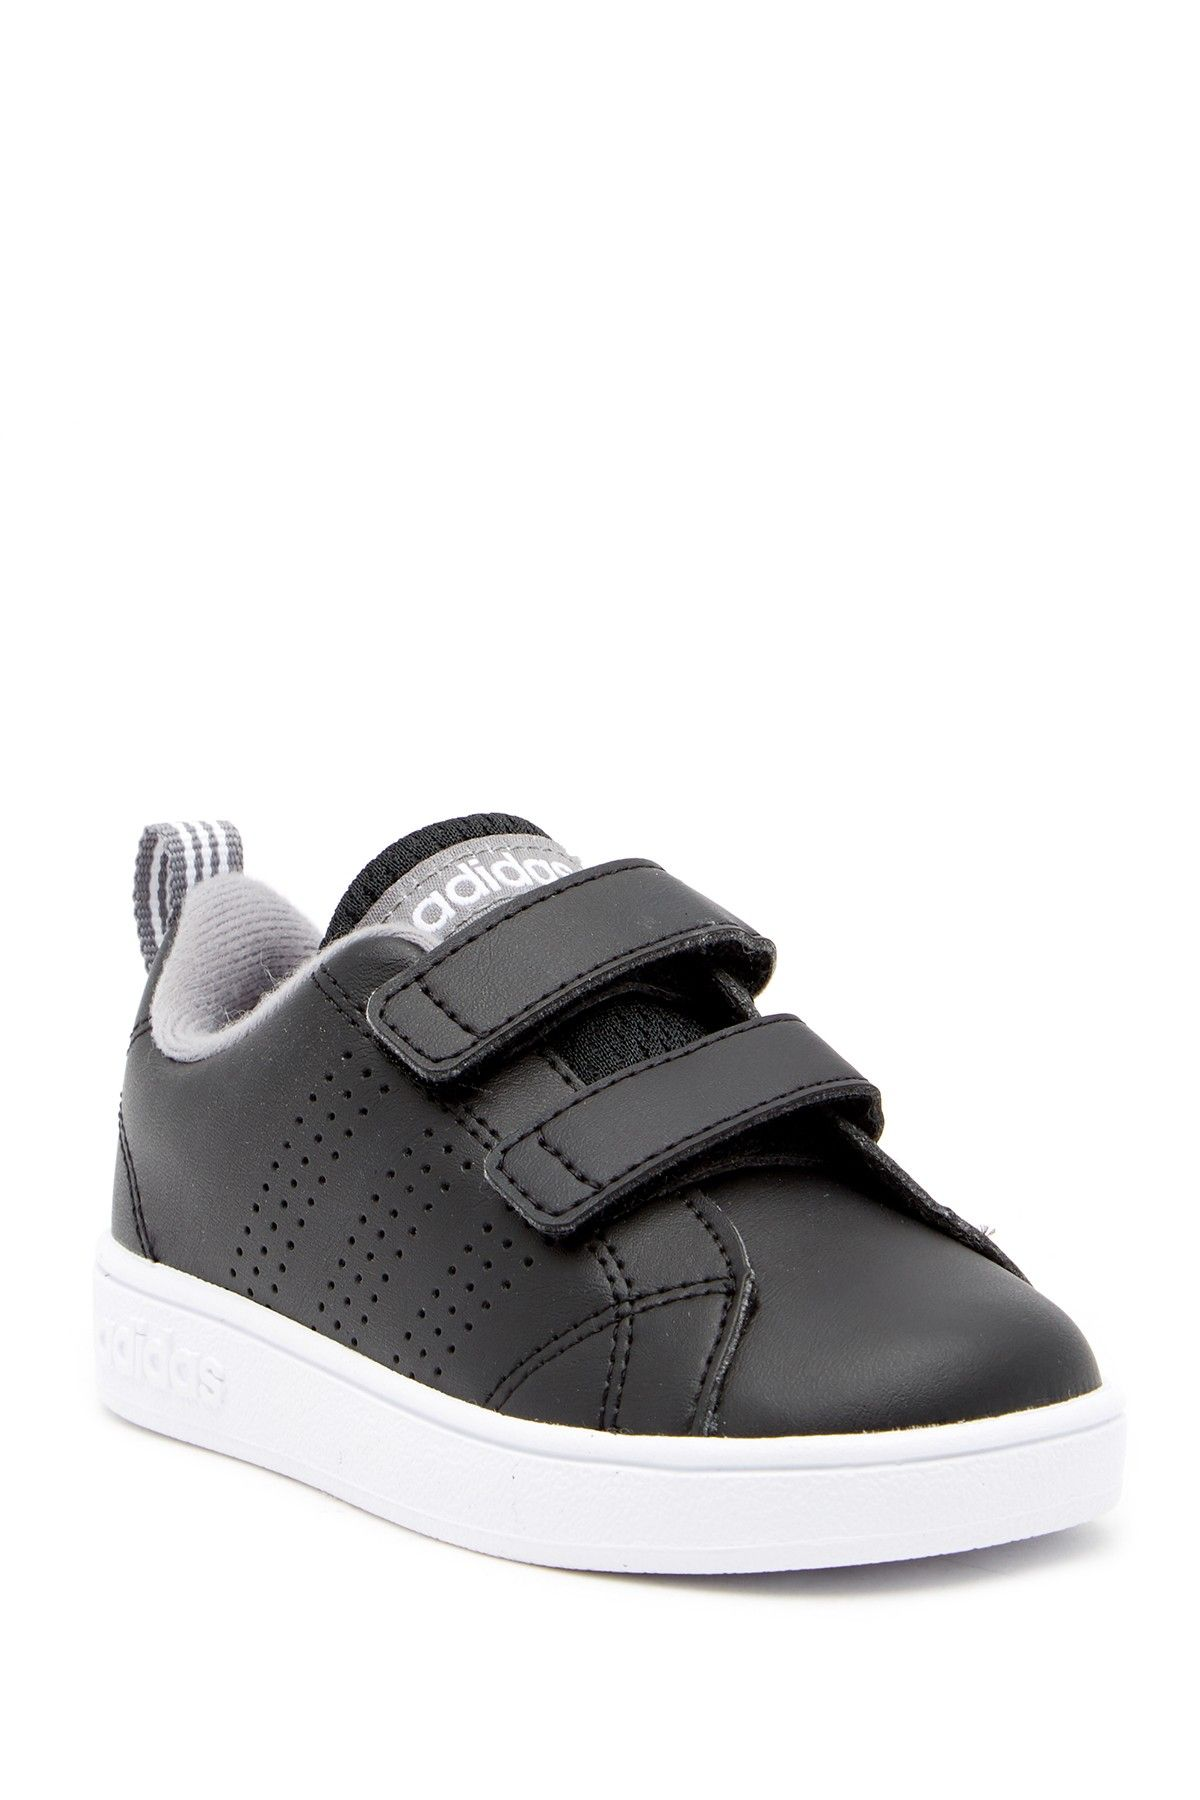 low priced e878b ef788 adidas VS Advantage Clean CMF Sneaker (Baby  Toddler)